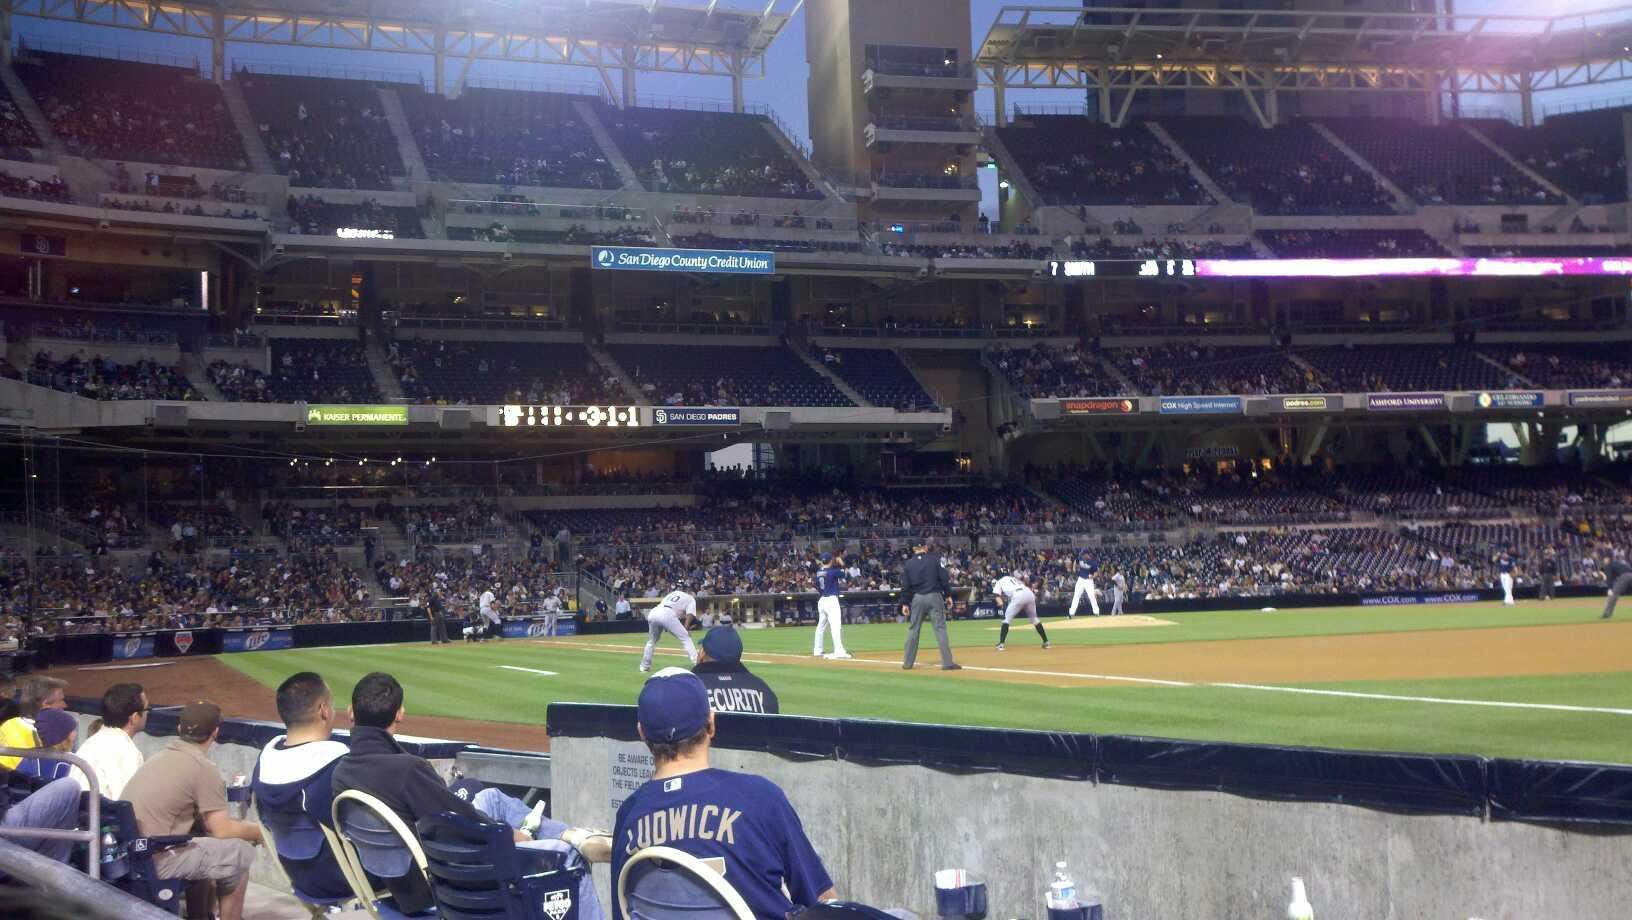 PETCO Park Section 115 Row 4